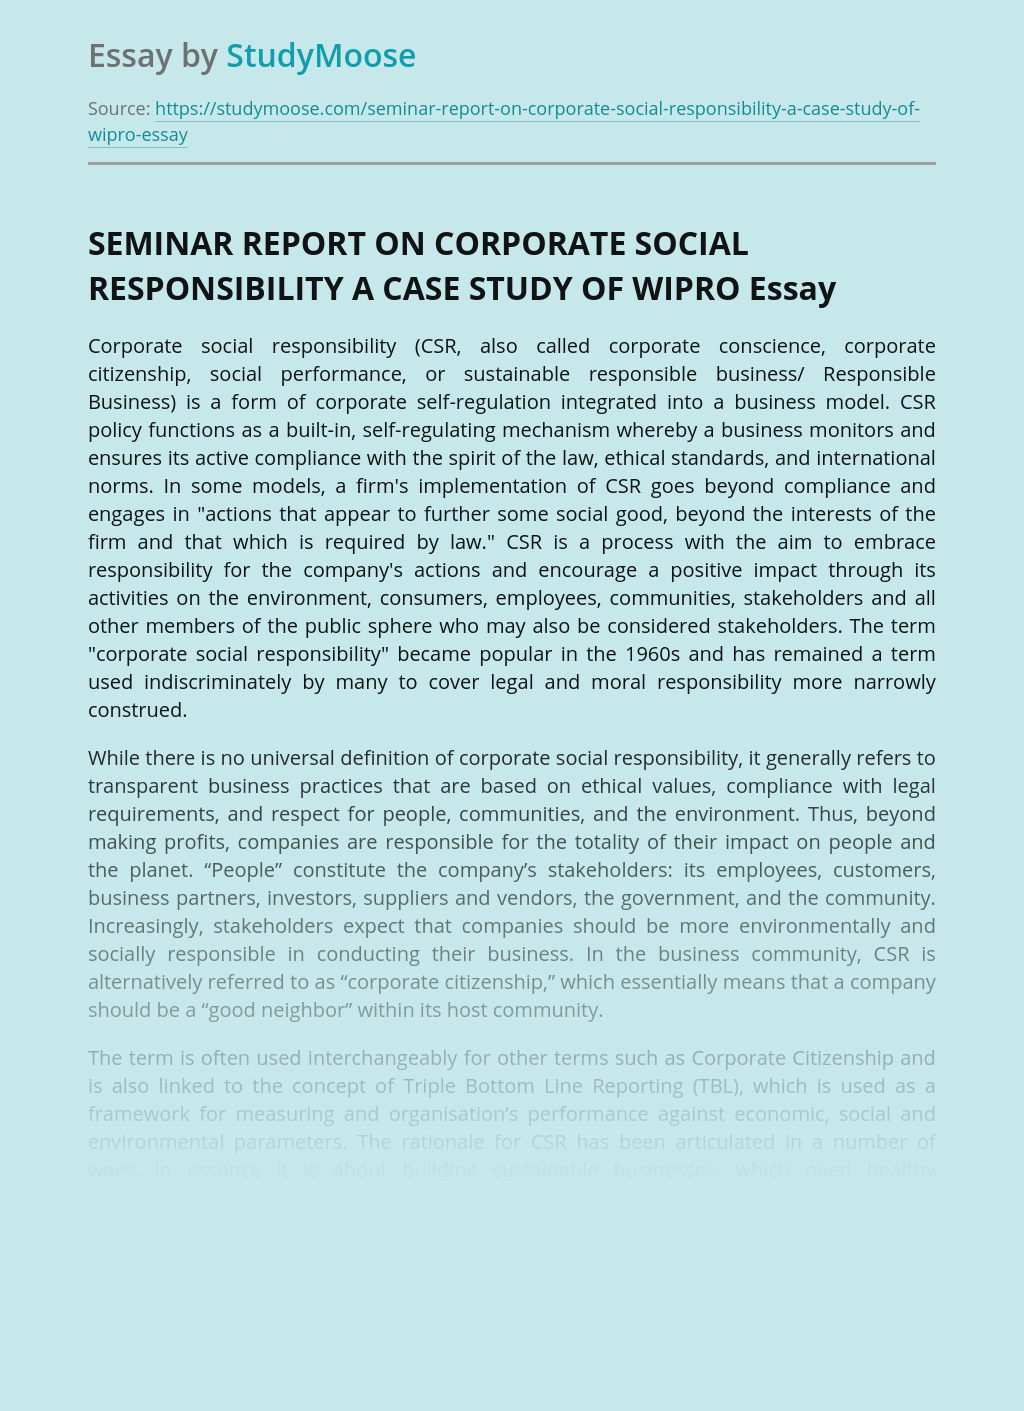 SEMINAR REPORT ON CORPORATE SOCIAL RESPONSIBILITY A CASE STUDY OF WIPRO